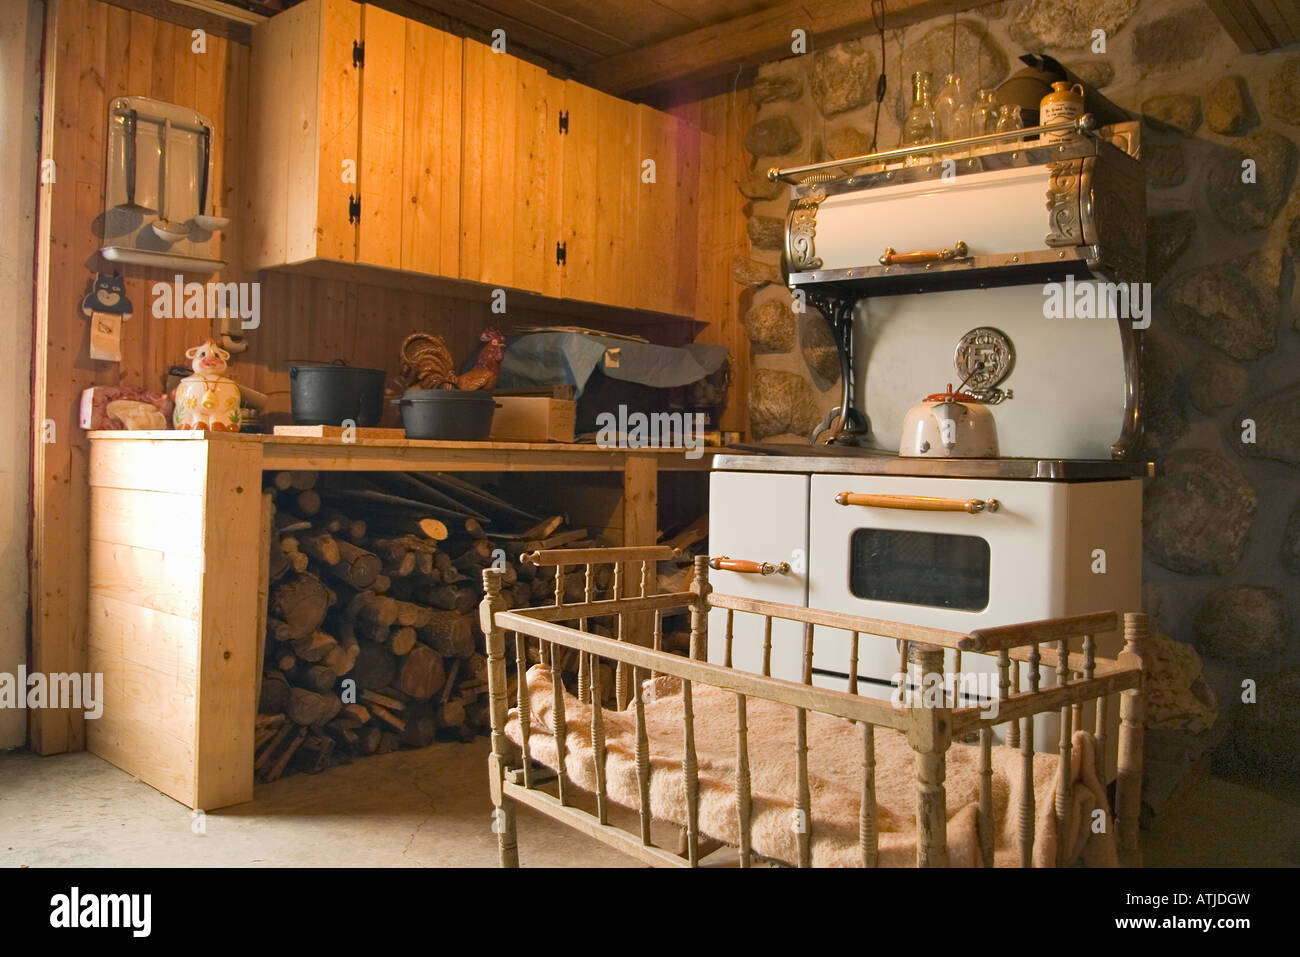 Old baby crib in front of old wood stove in antique kitchen ...